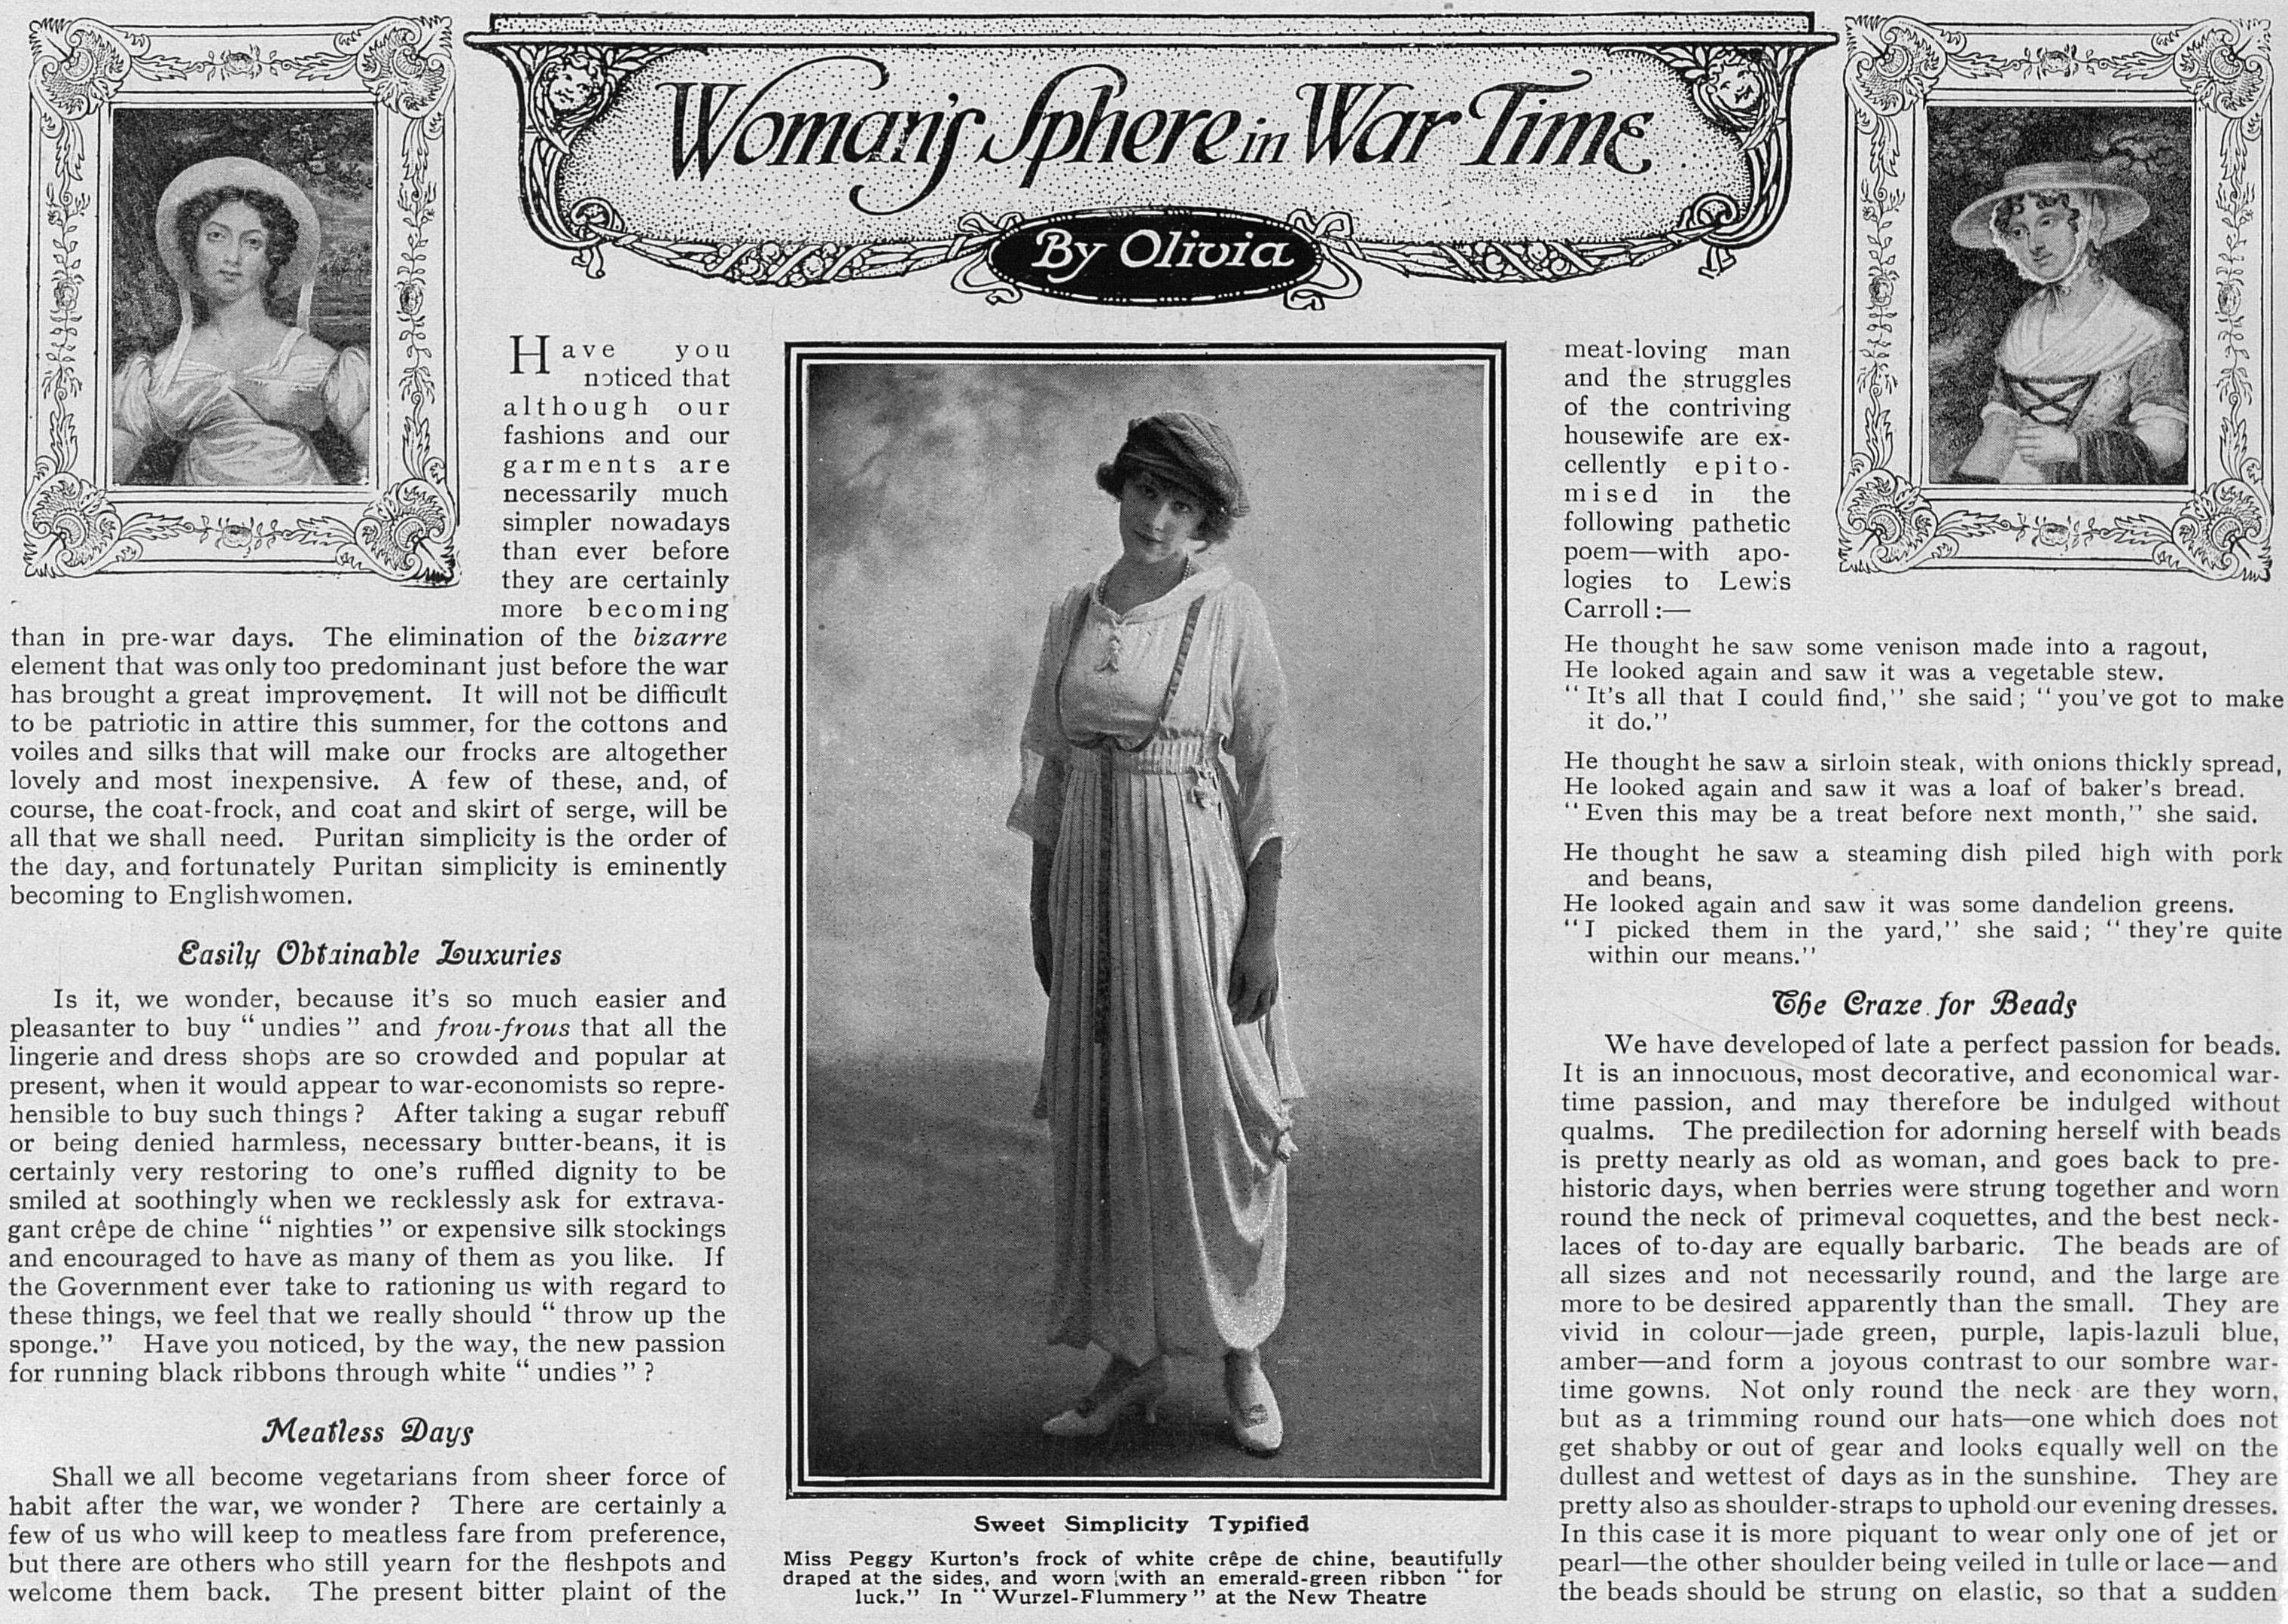 WomansSphereInWarTime_12May1917